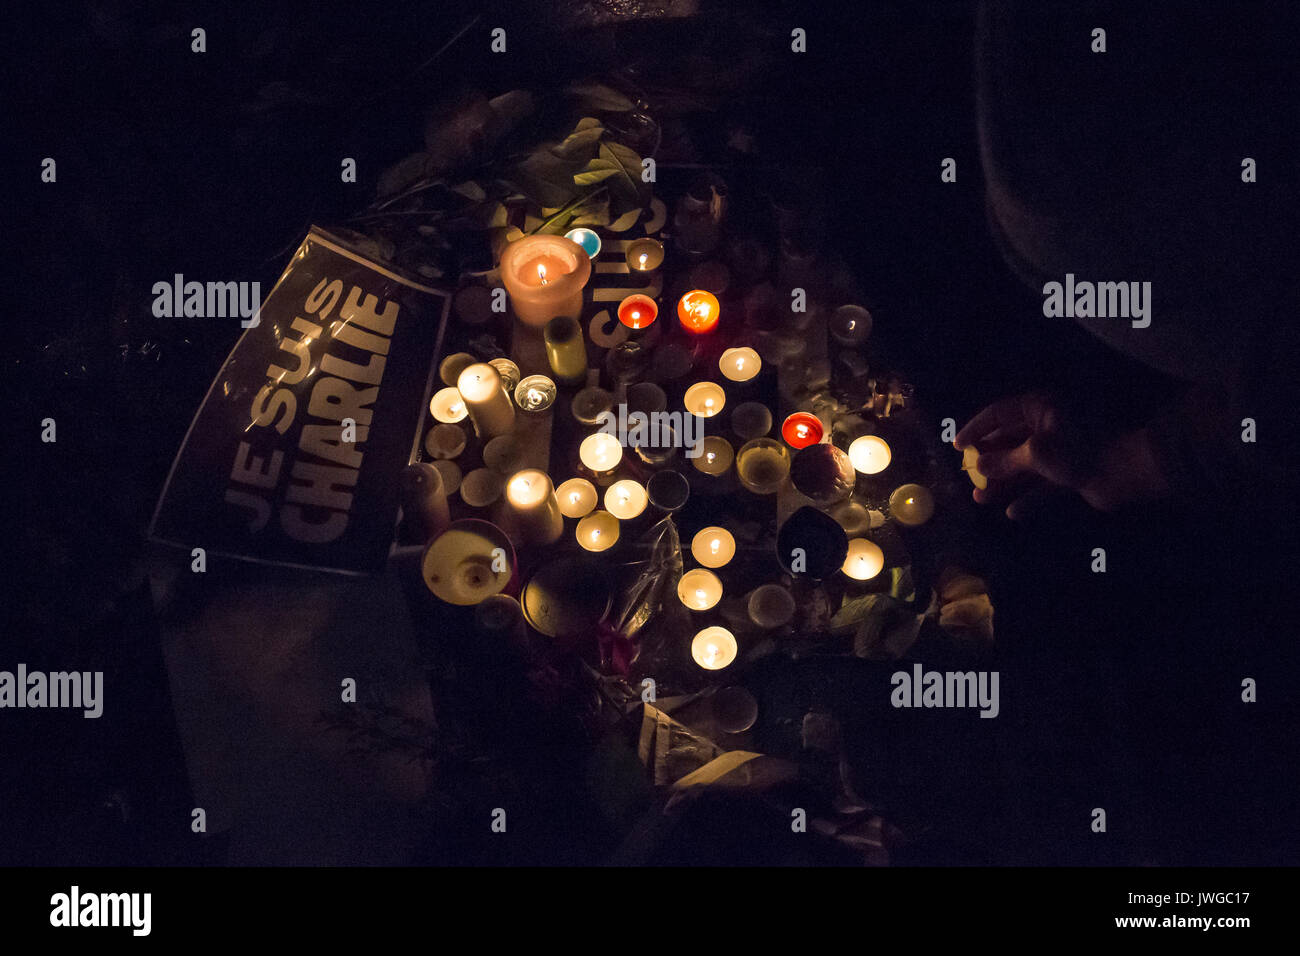 je suis charlie sign among candles. Homage at the victims of Charlie hebdo killing in Paris the 7th of january 2015. - Stock Image